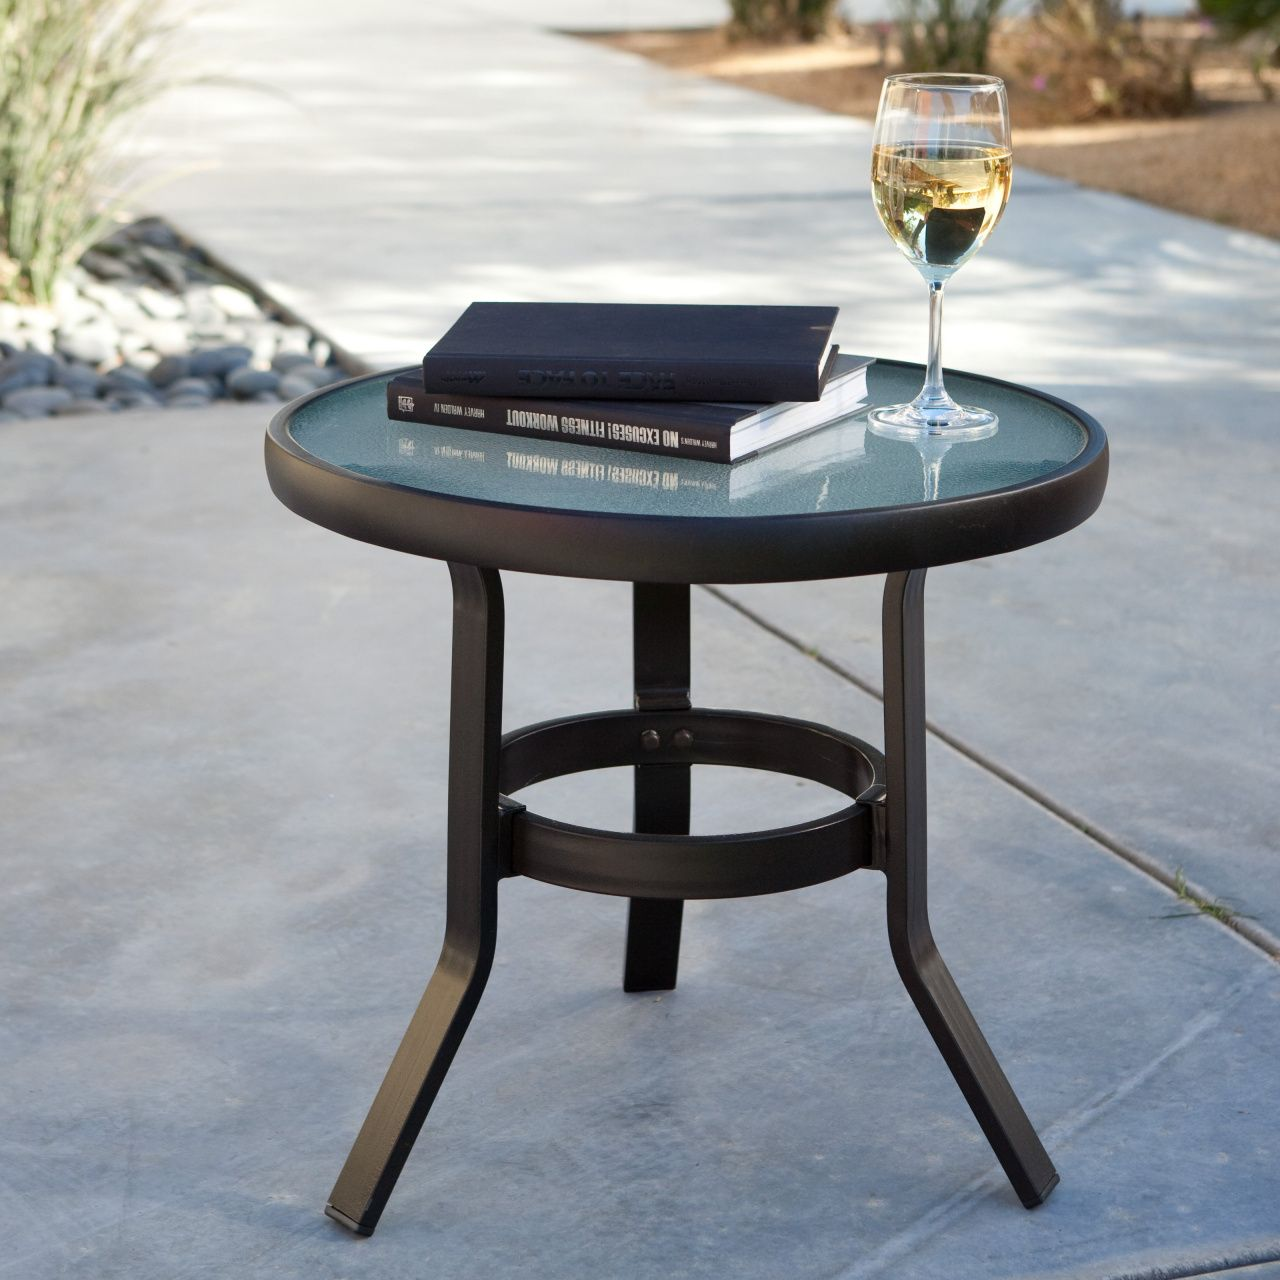 Superb Small Round Patio Side Table   Executive Home Office Furniture Check More  At Http:/